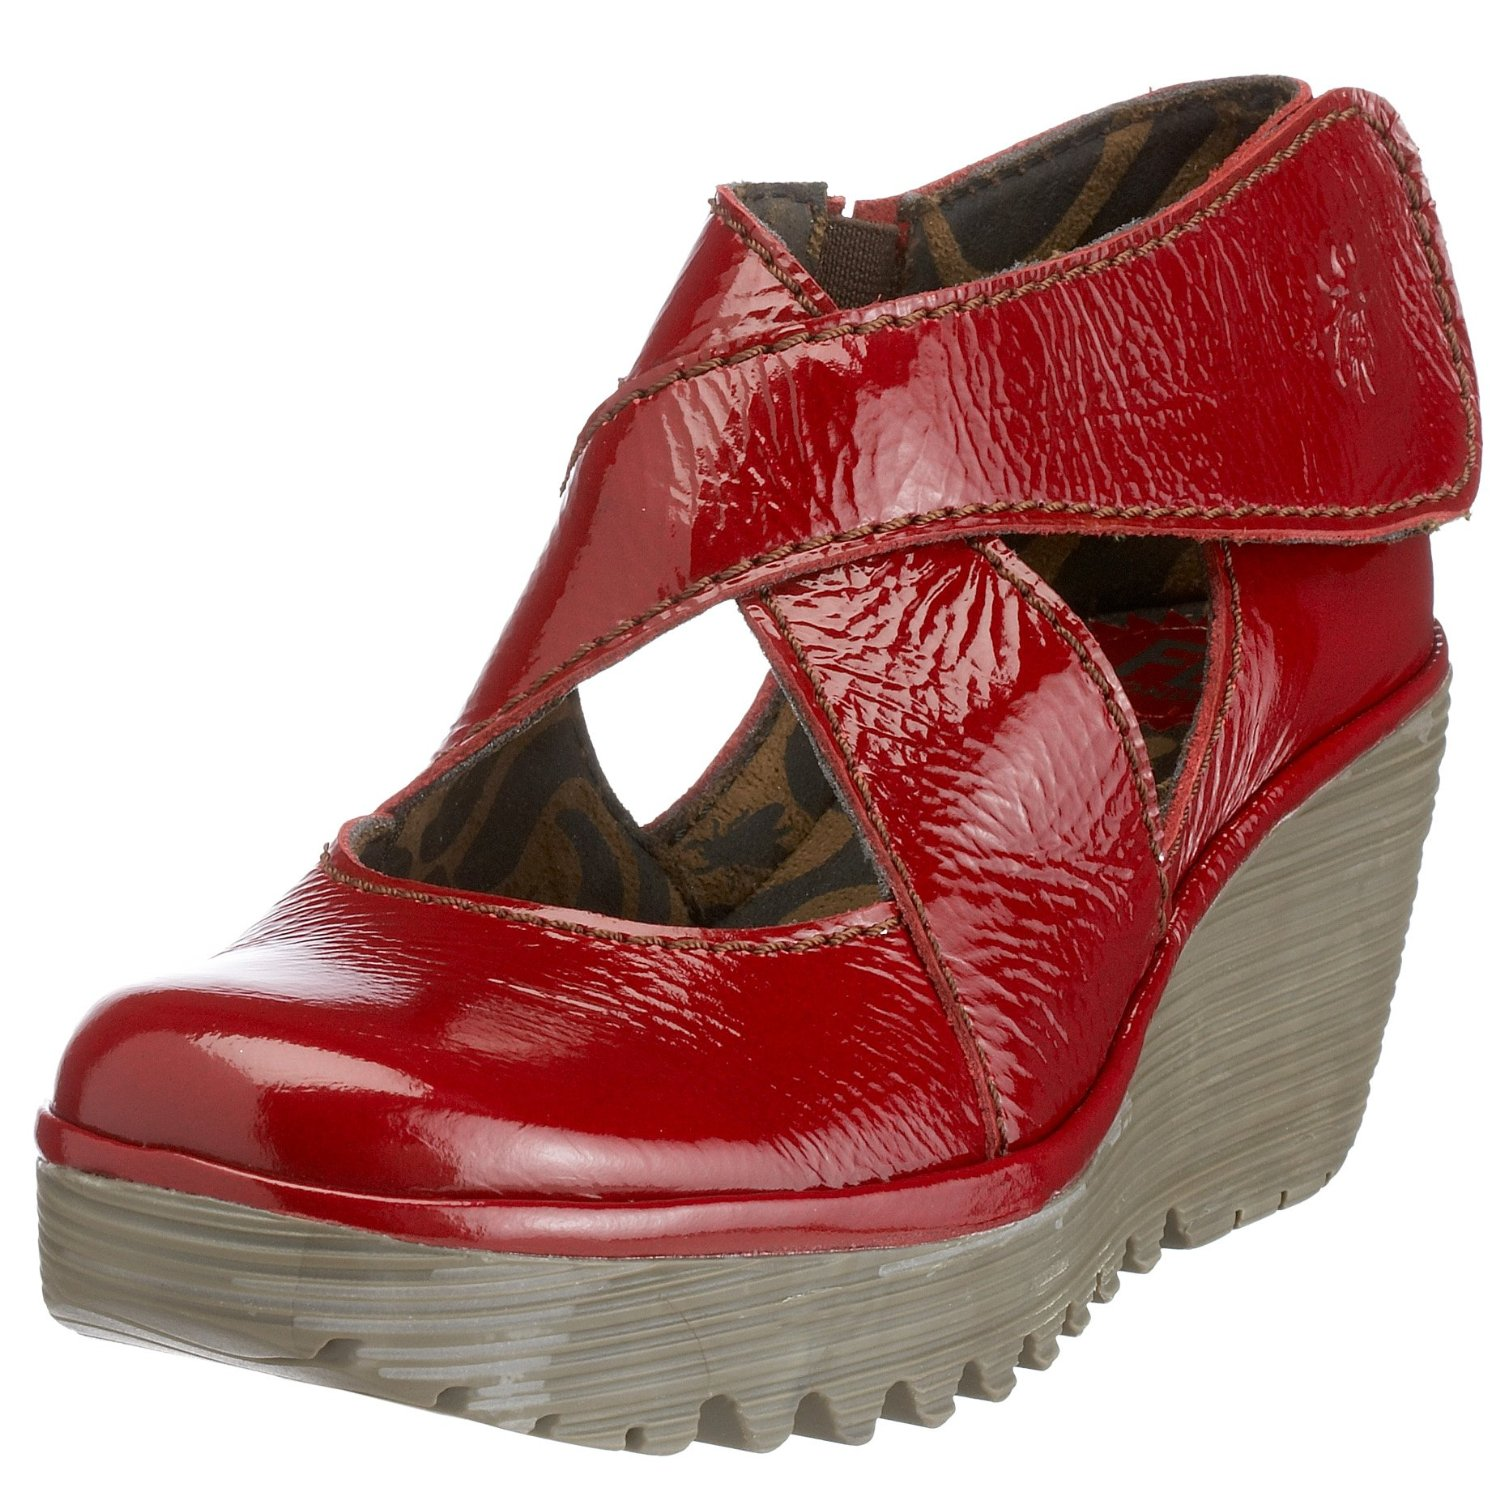 Red Women's Wedges: urgut.ga - Your Online Women's Shoes Store! Get 5% in rewards with Club O!